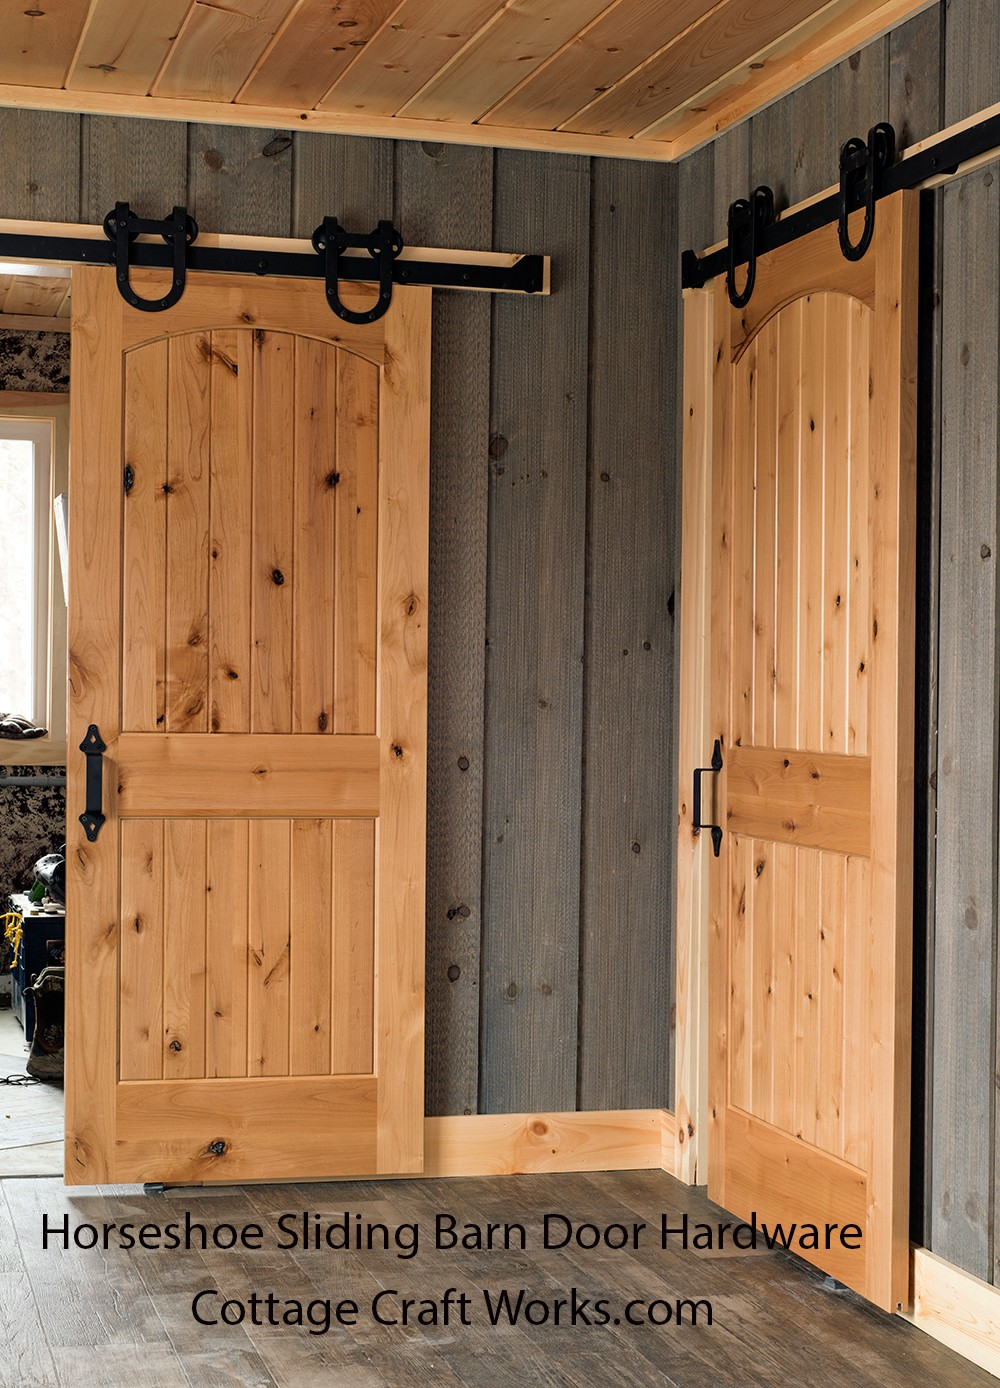 Usa Sliding Barn Door Hardware For Up To 8 Openings